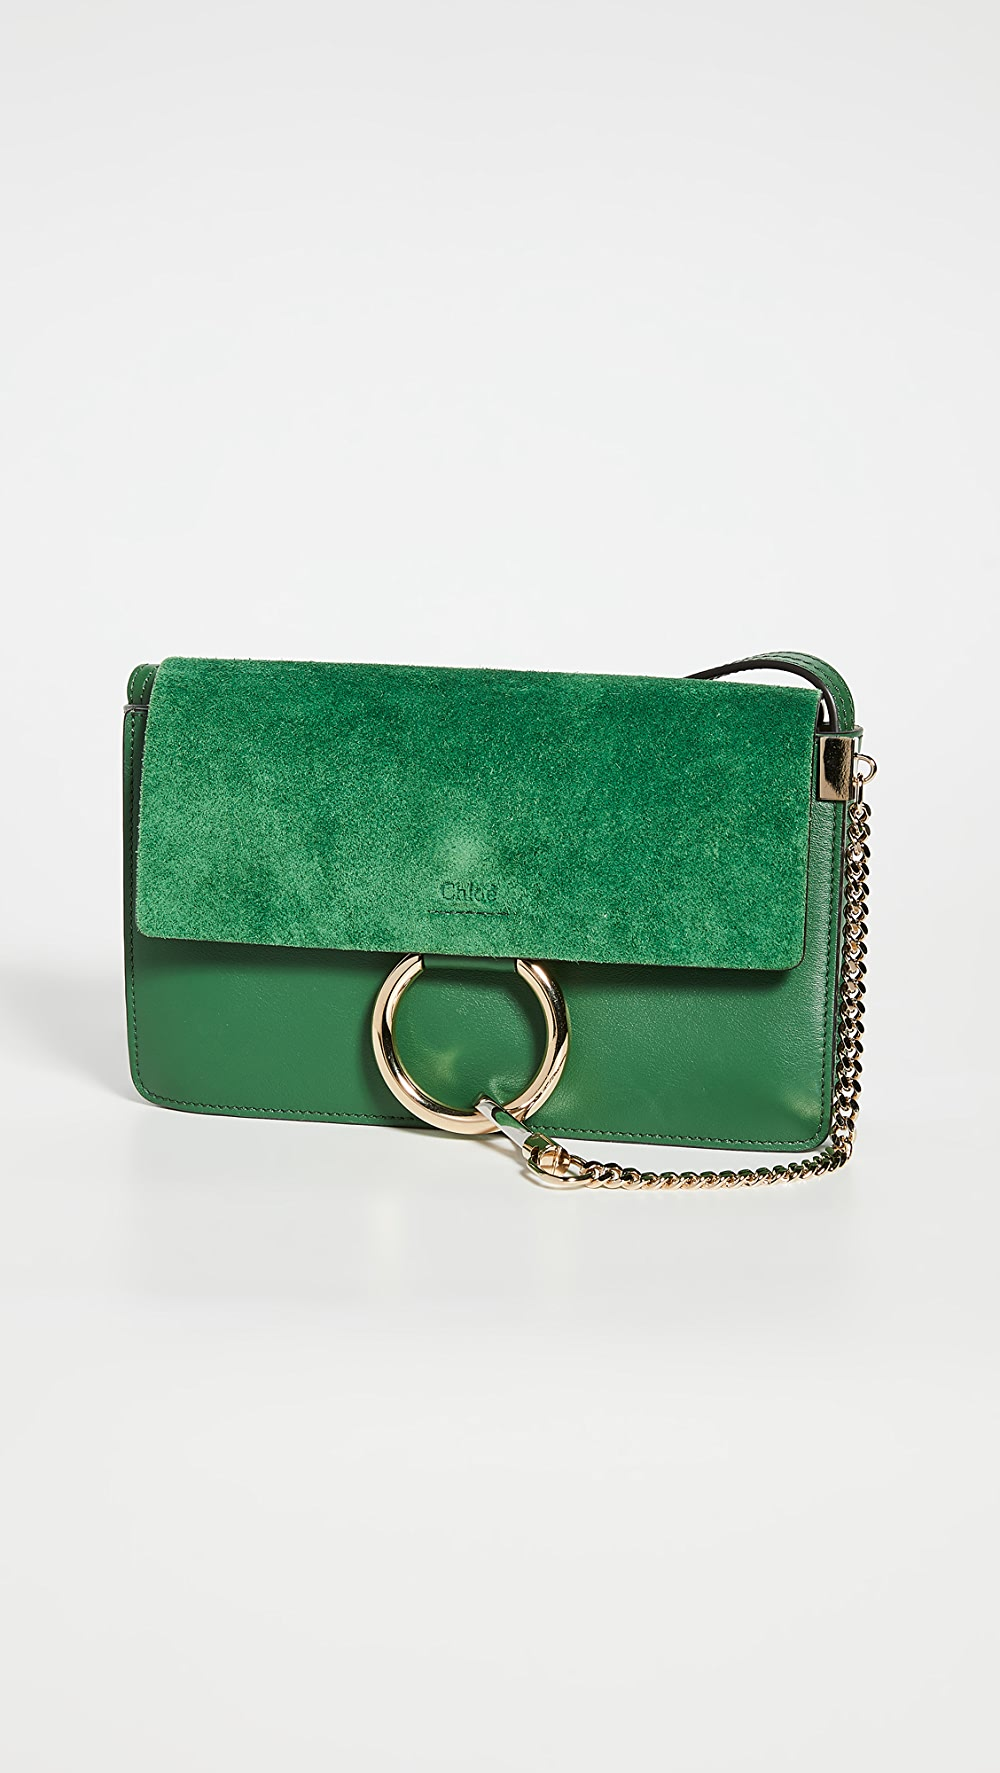 Capable What Goes Around Comes Around - Chloe Green Faye Bag Keep You Fit All The Time